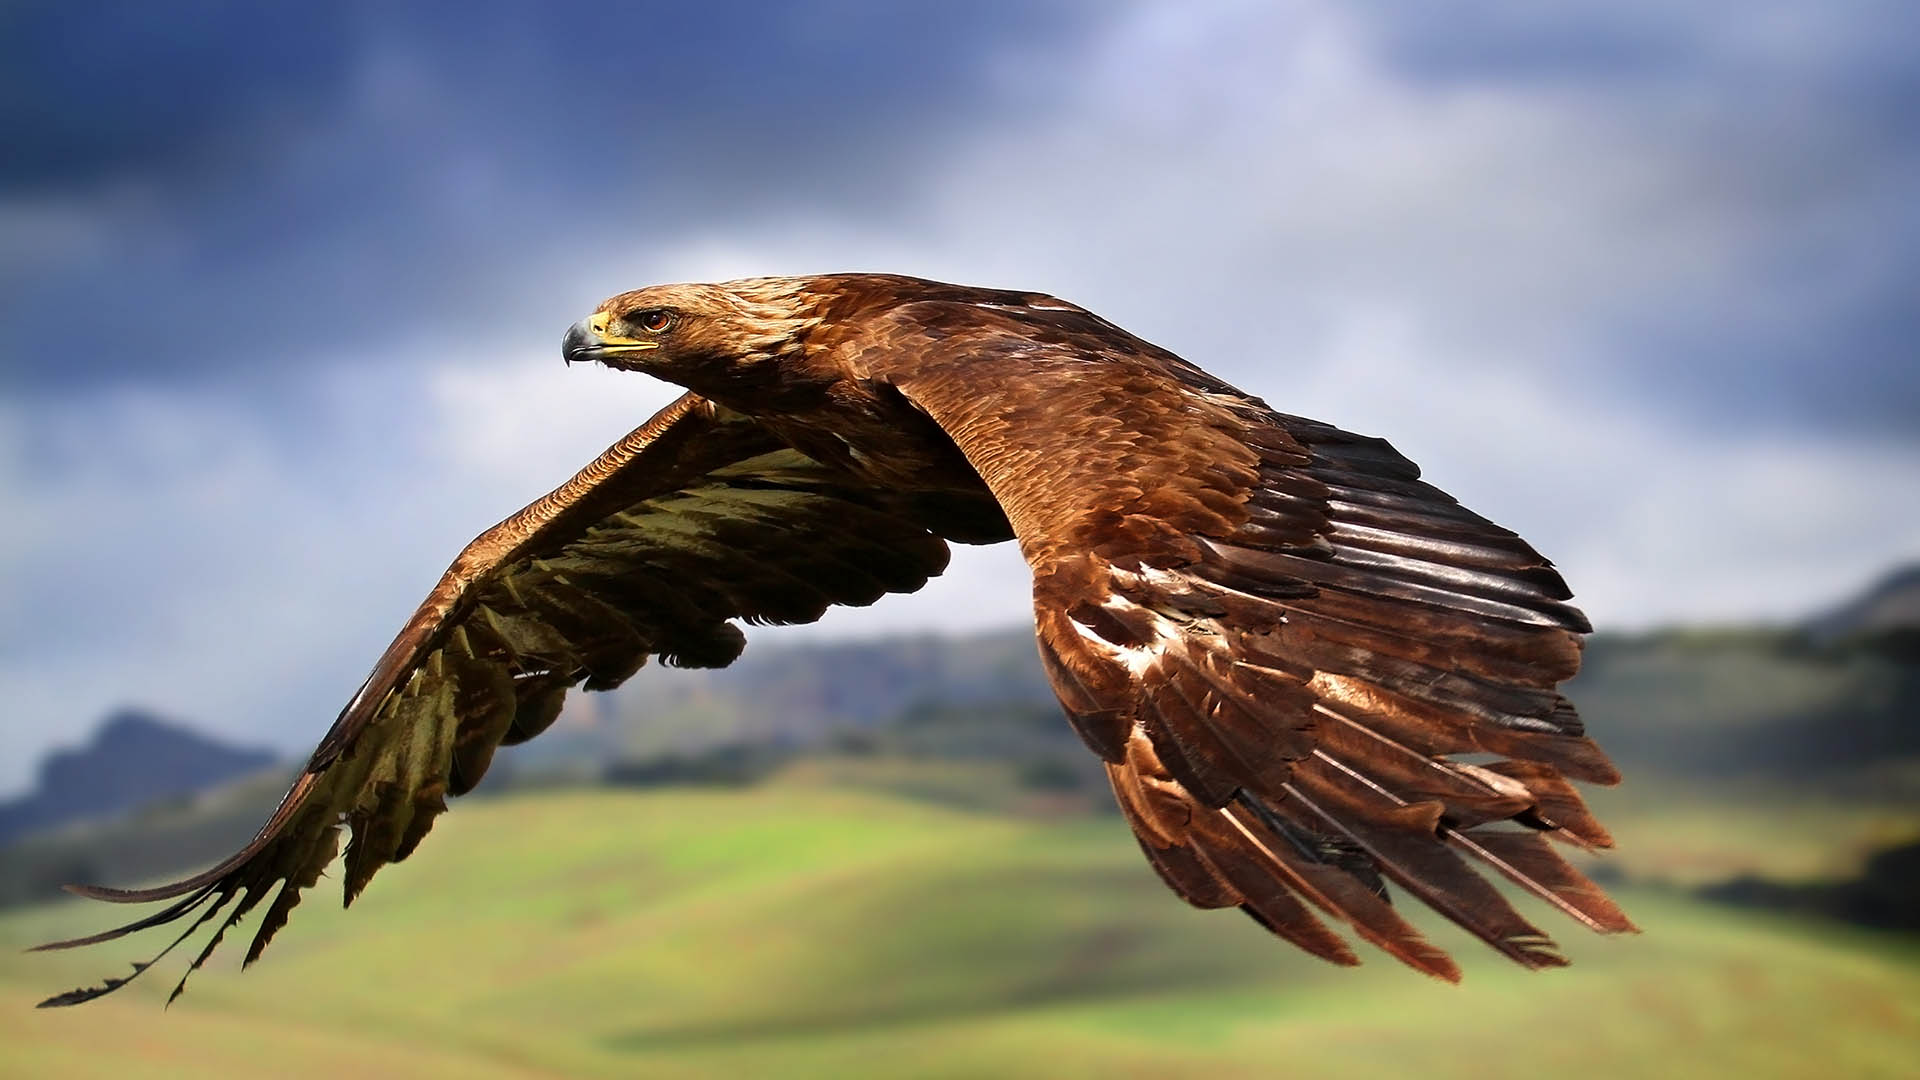 eagle in flight wallpaper hd  Wallpaper Hd Fondos de Pantalla Hd 1920x1080